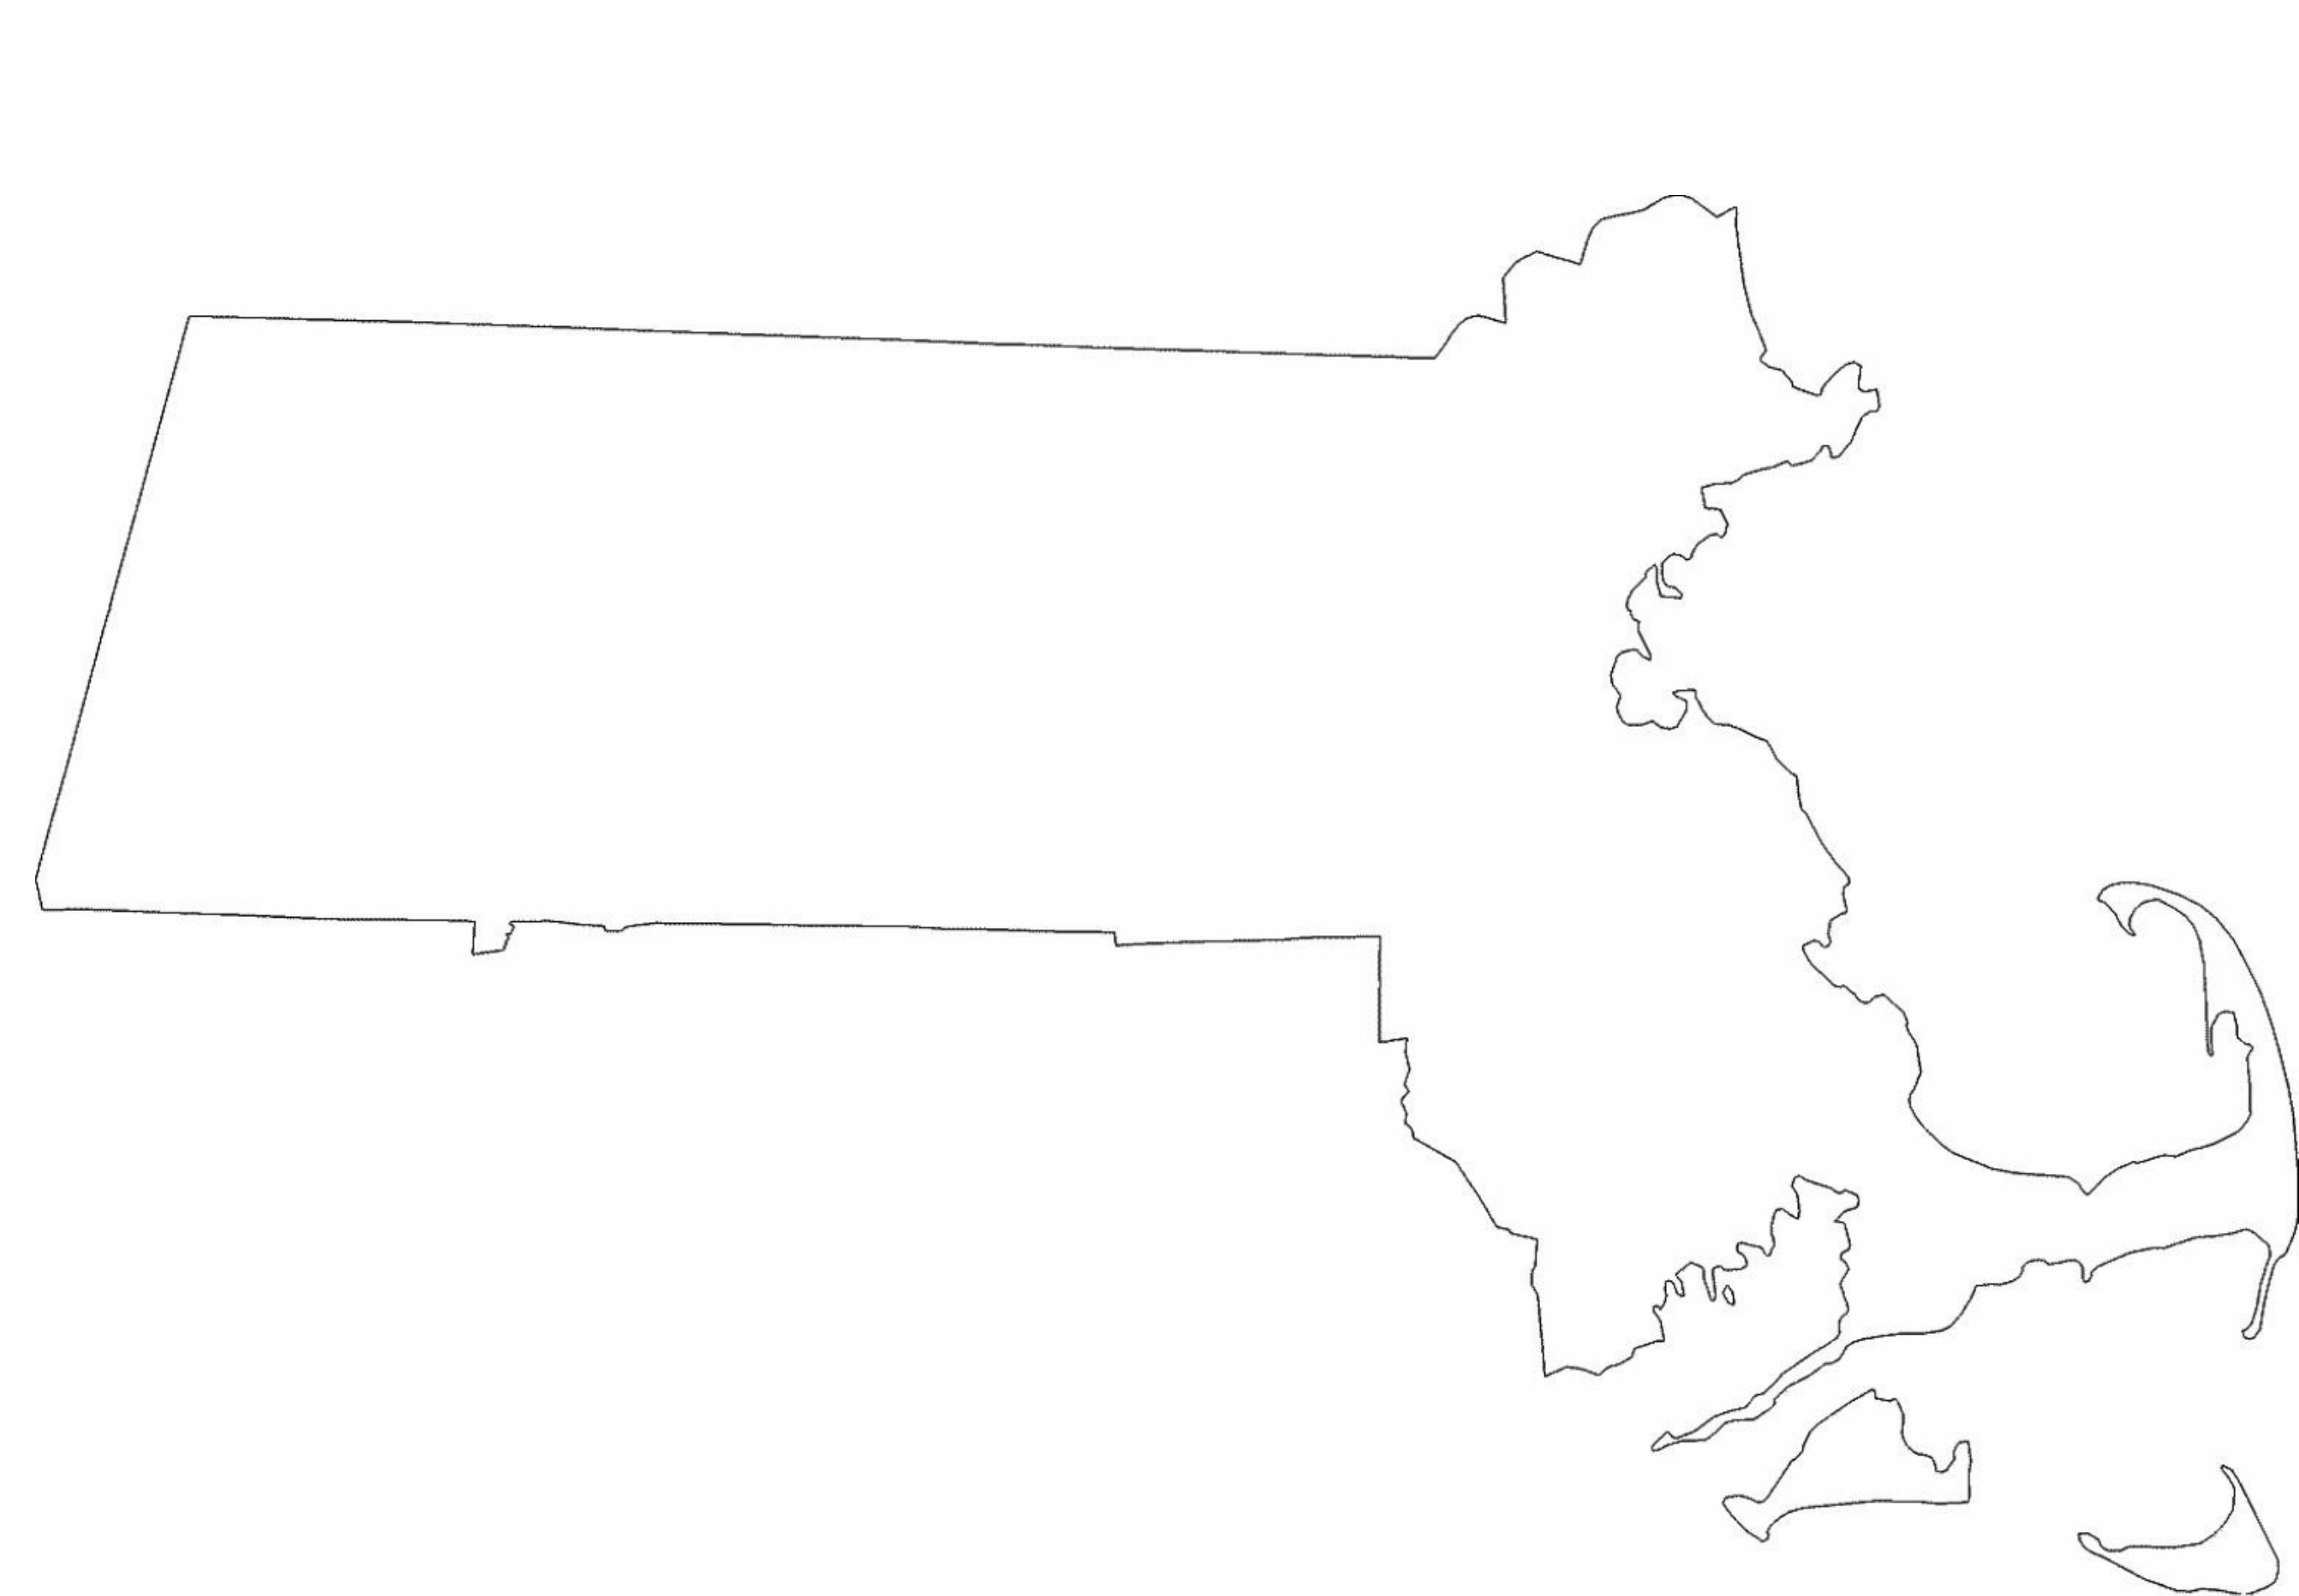 arkansas state map with cities with Free Massachusetts State Outline Map on El Mapa Que Describe Los Principales Rios De Estados Unidos  o Si Fueran Un Sistema De Metro together with Albuquerque Location On The Us Map moreover C Red River Parish Louisiana besides Tennessee Topographic Map besides Weekend Waterfall Itinerary Nc.